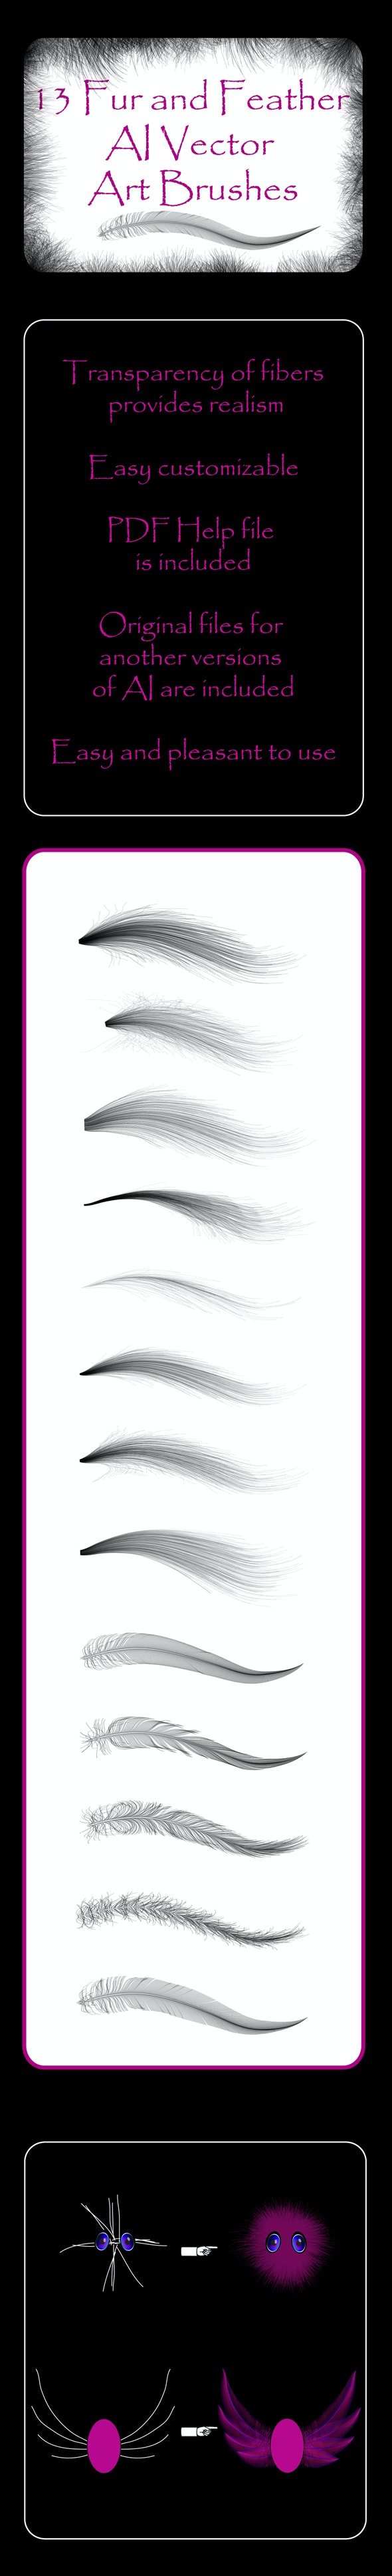 Fur and Feather  - 13 Fluffy Vector Art AI Brushes